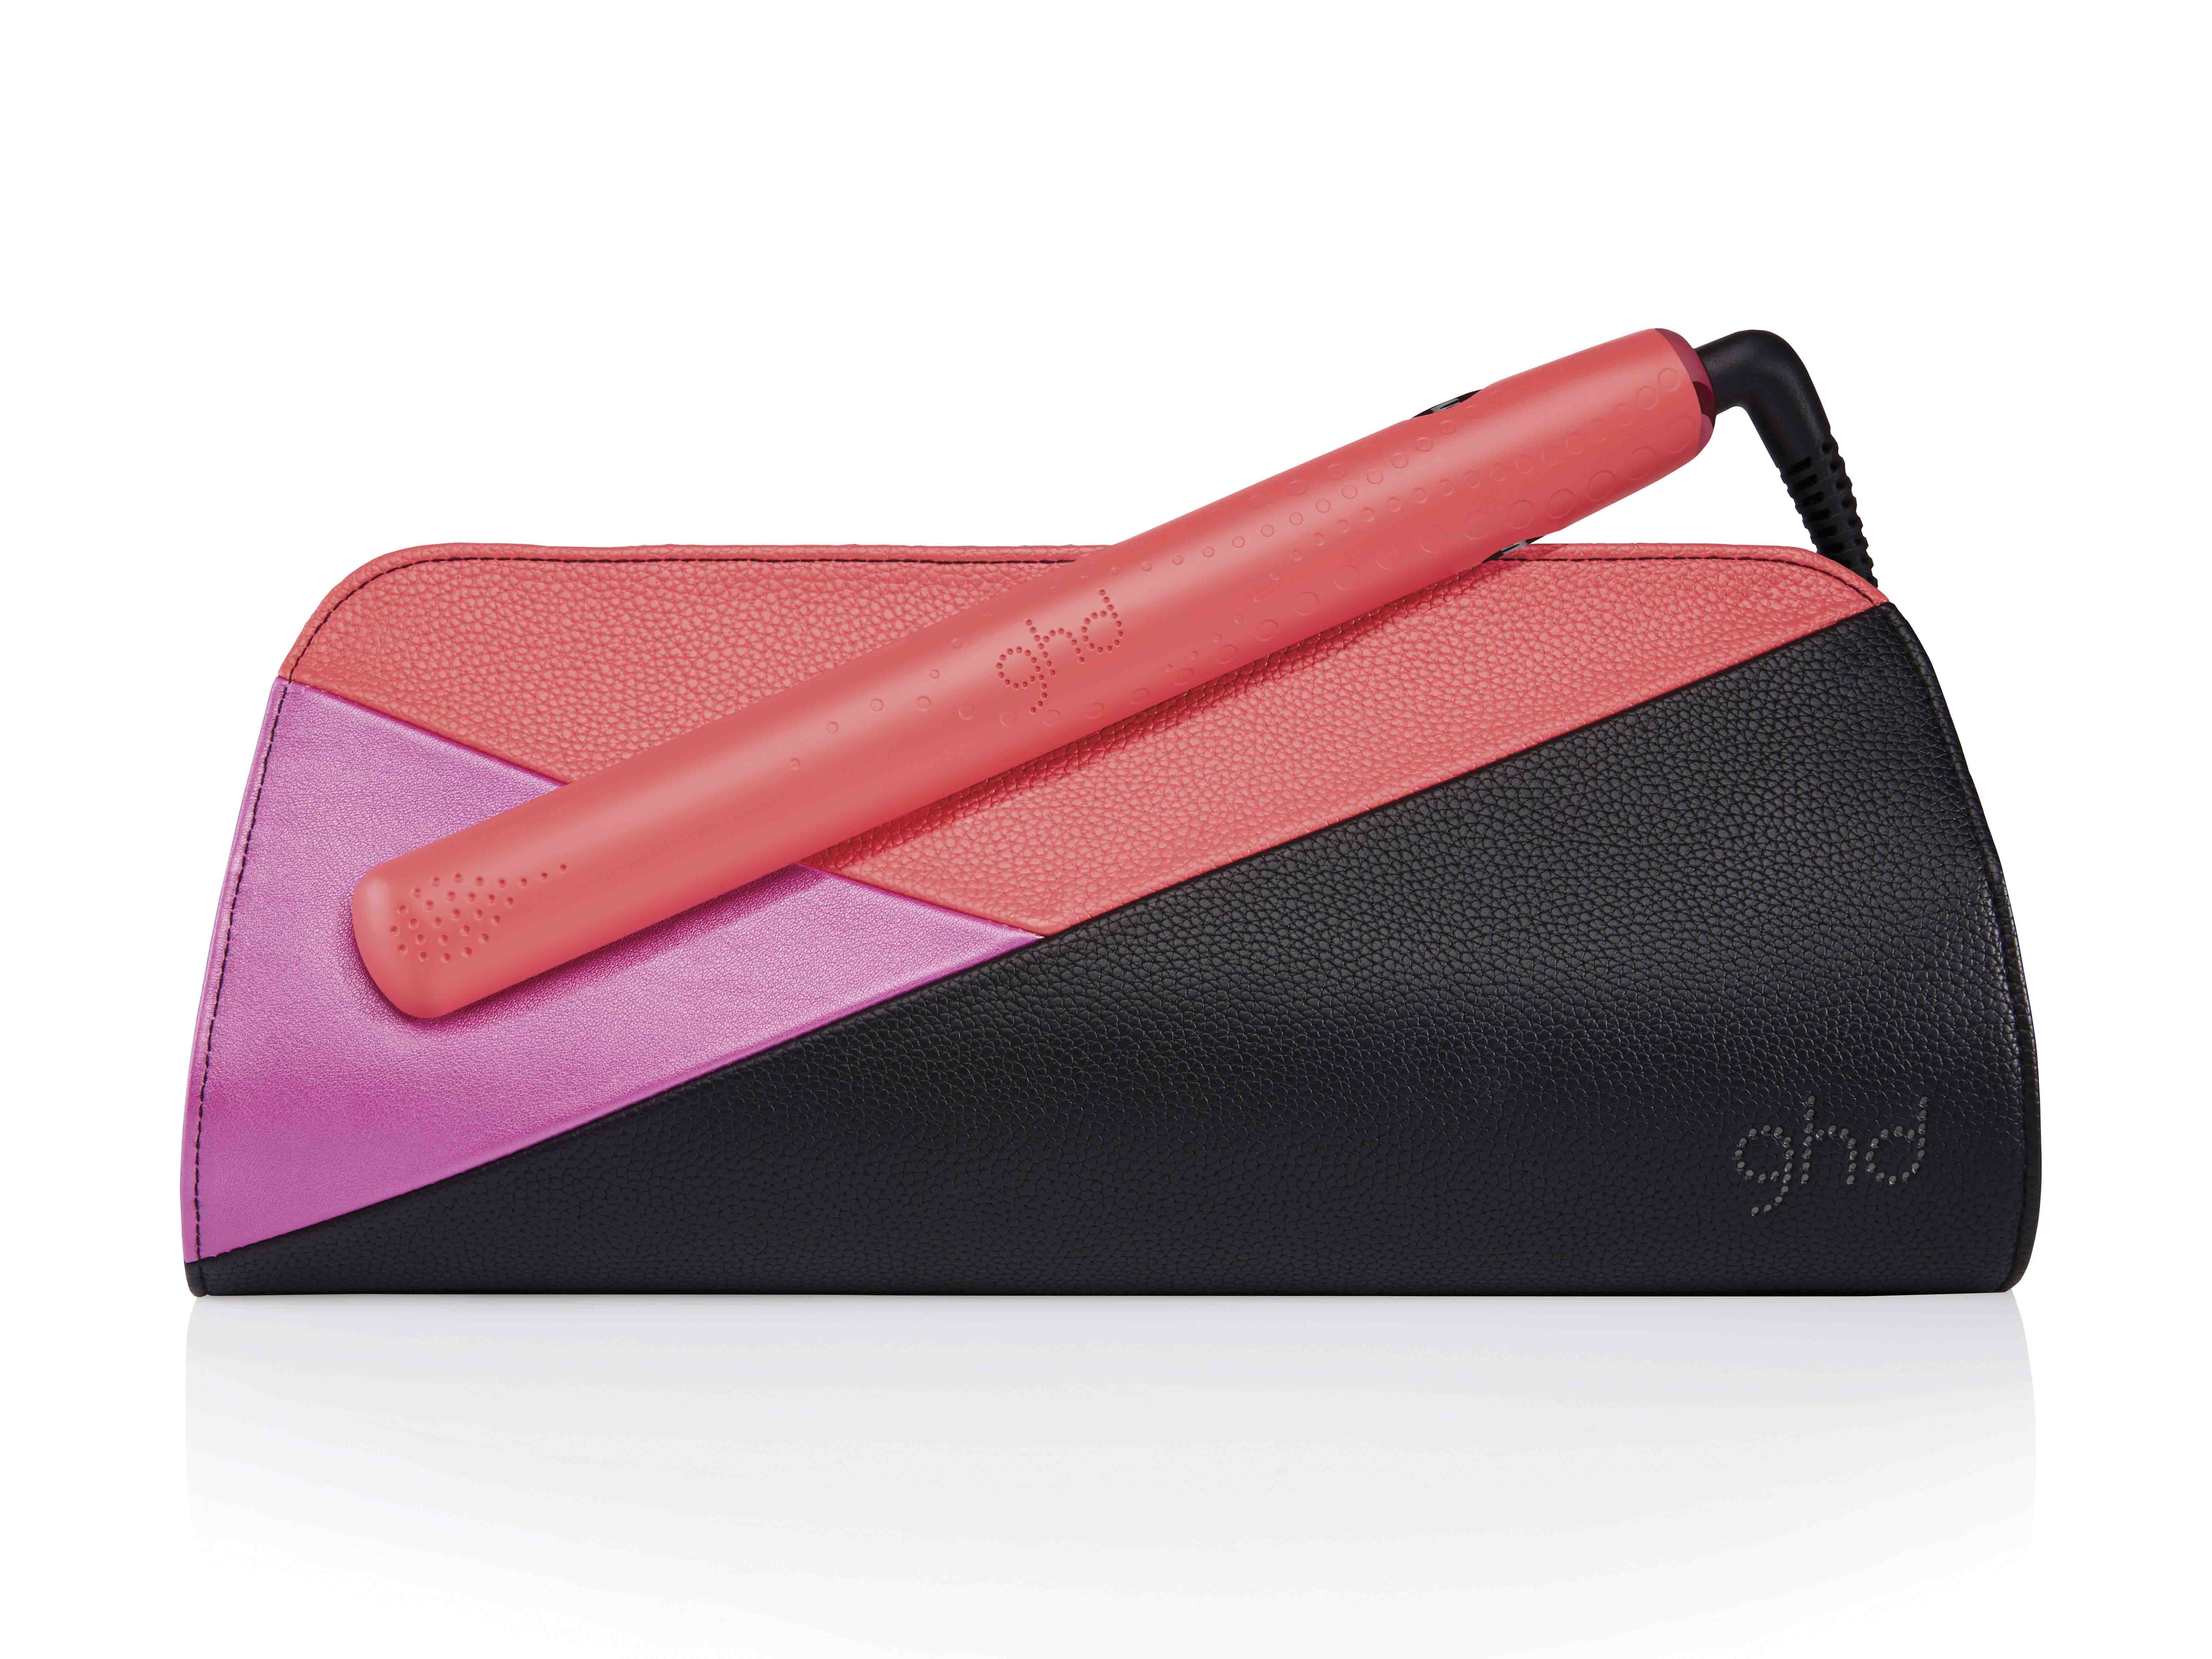 ghd pink blush V styler with roll bag_RRP $320